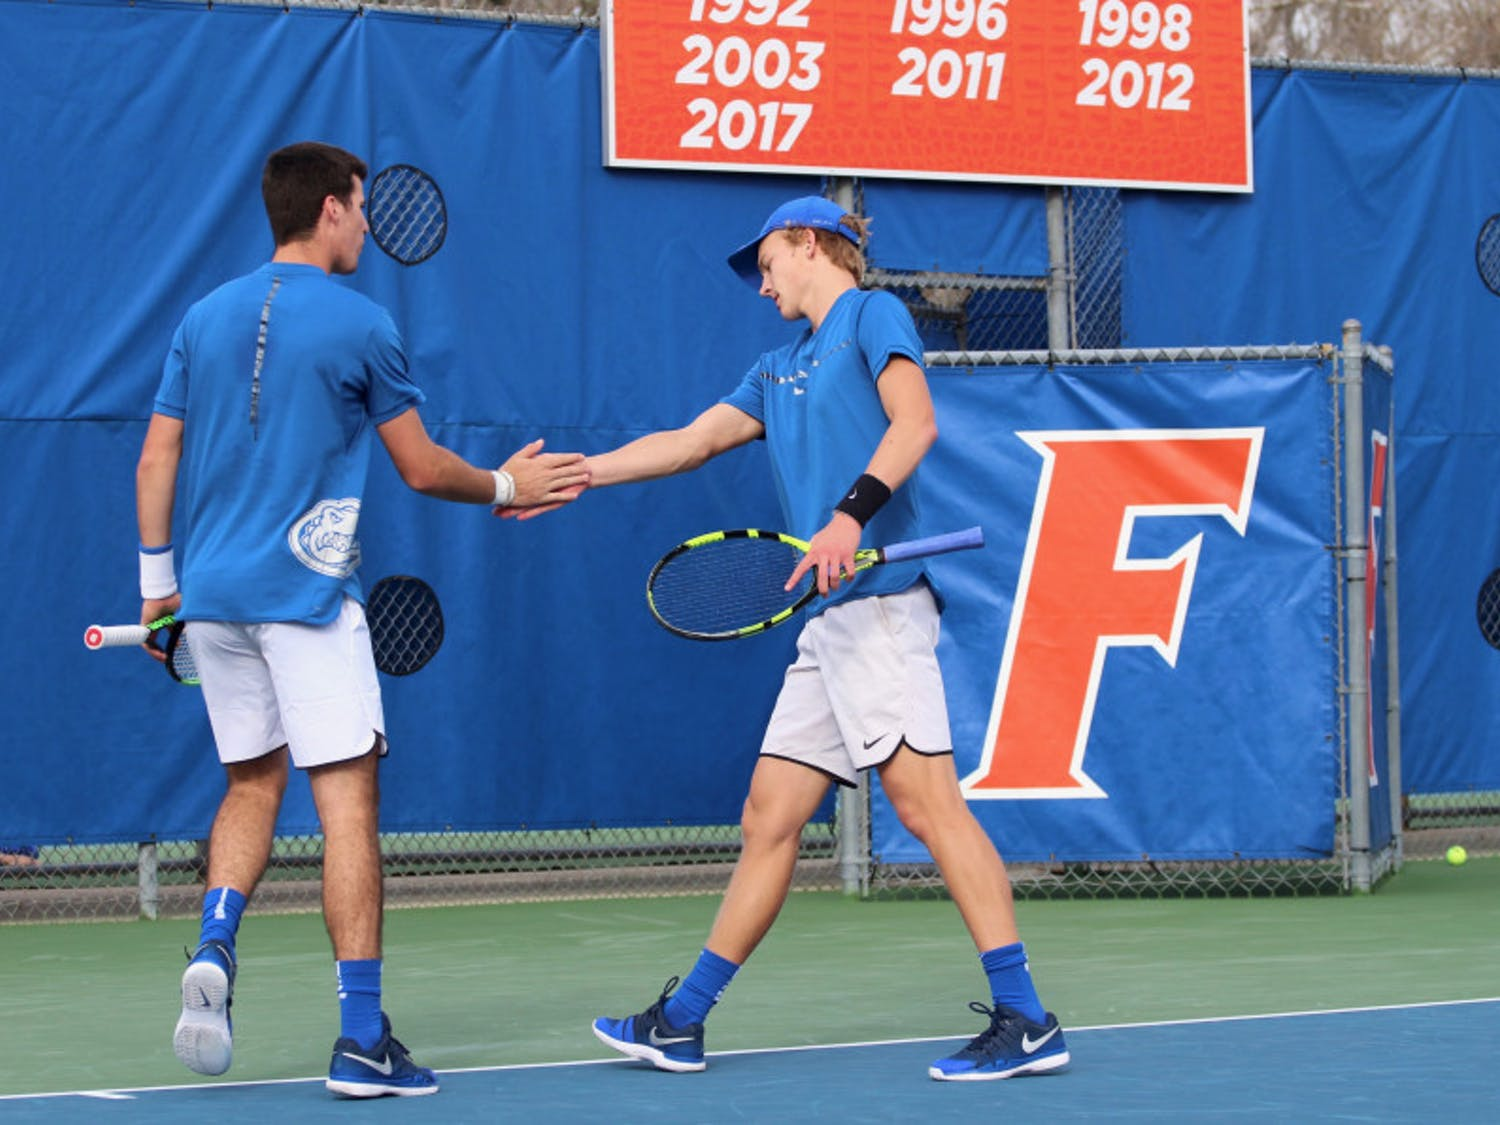 Junior Alfredo Perez (left) and sophomore Johannes Ingildsen (right) are onto the quarterfinals of the NCAA Doubles Championships along with fellow Gators pairing of junior McClain Kessler and freshman Duarte Vale.